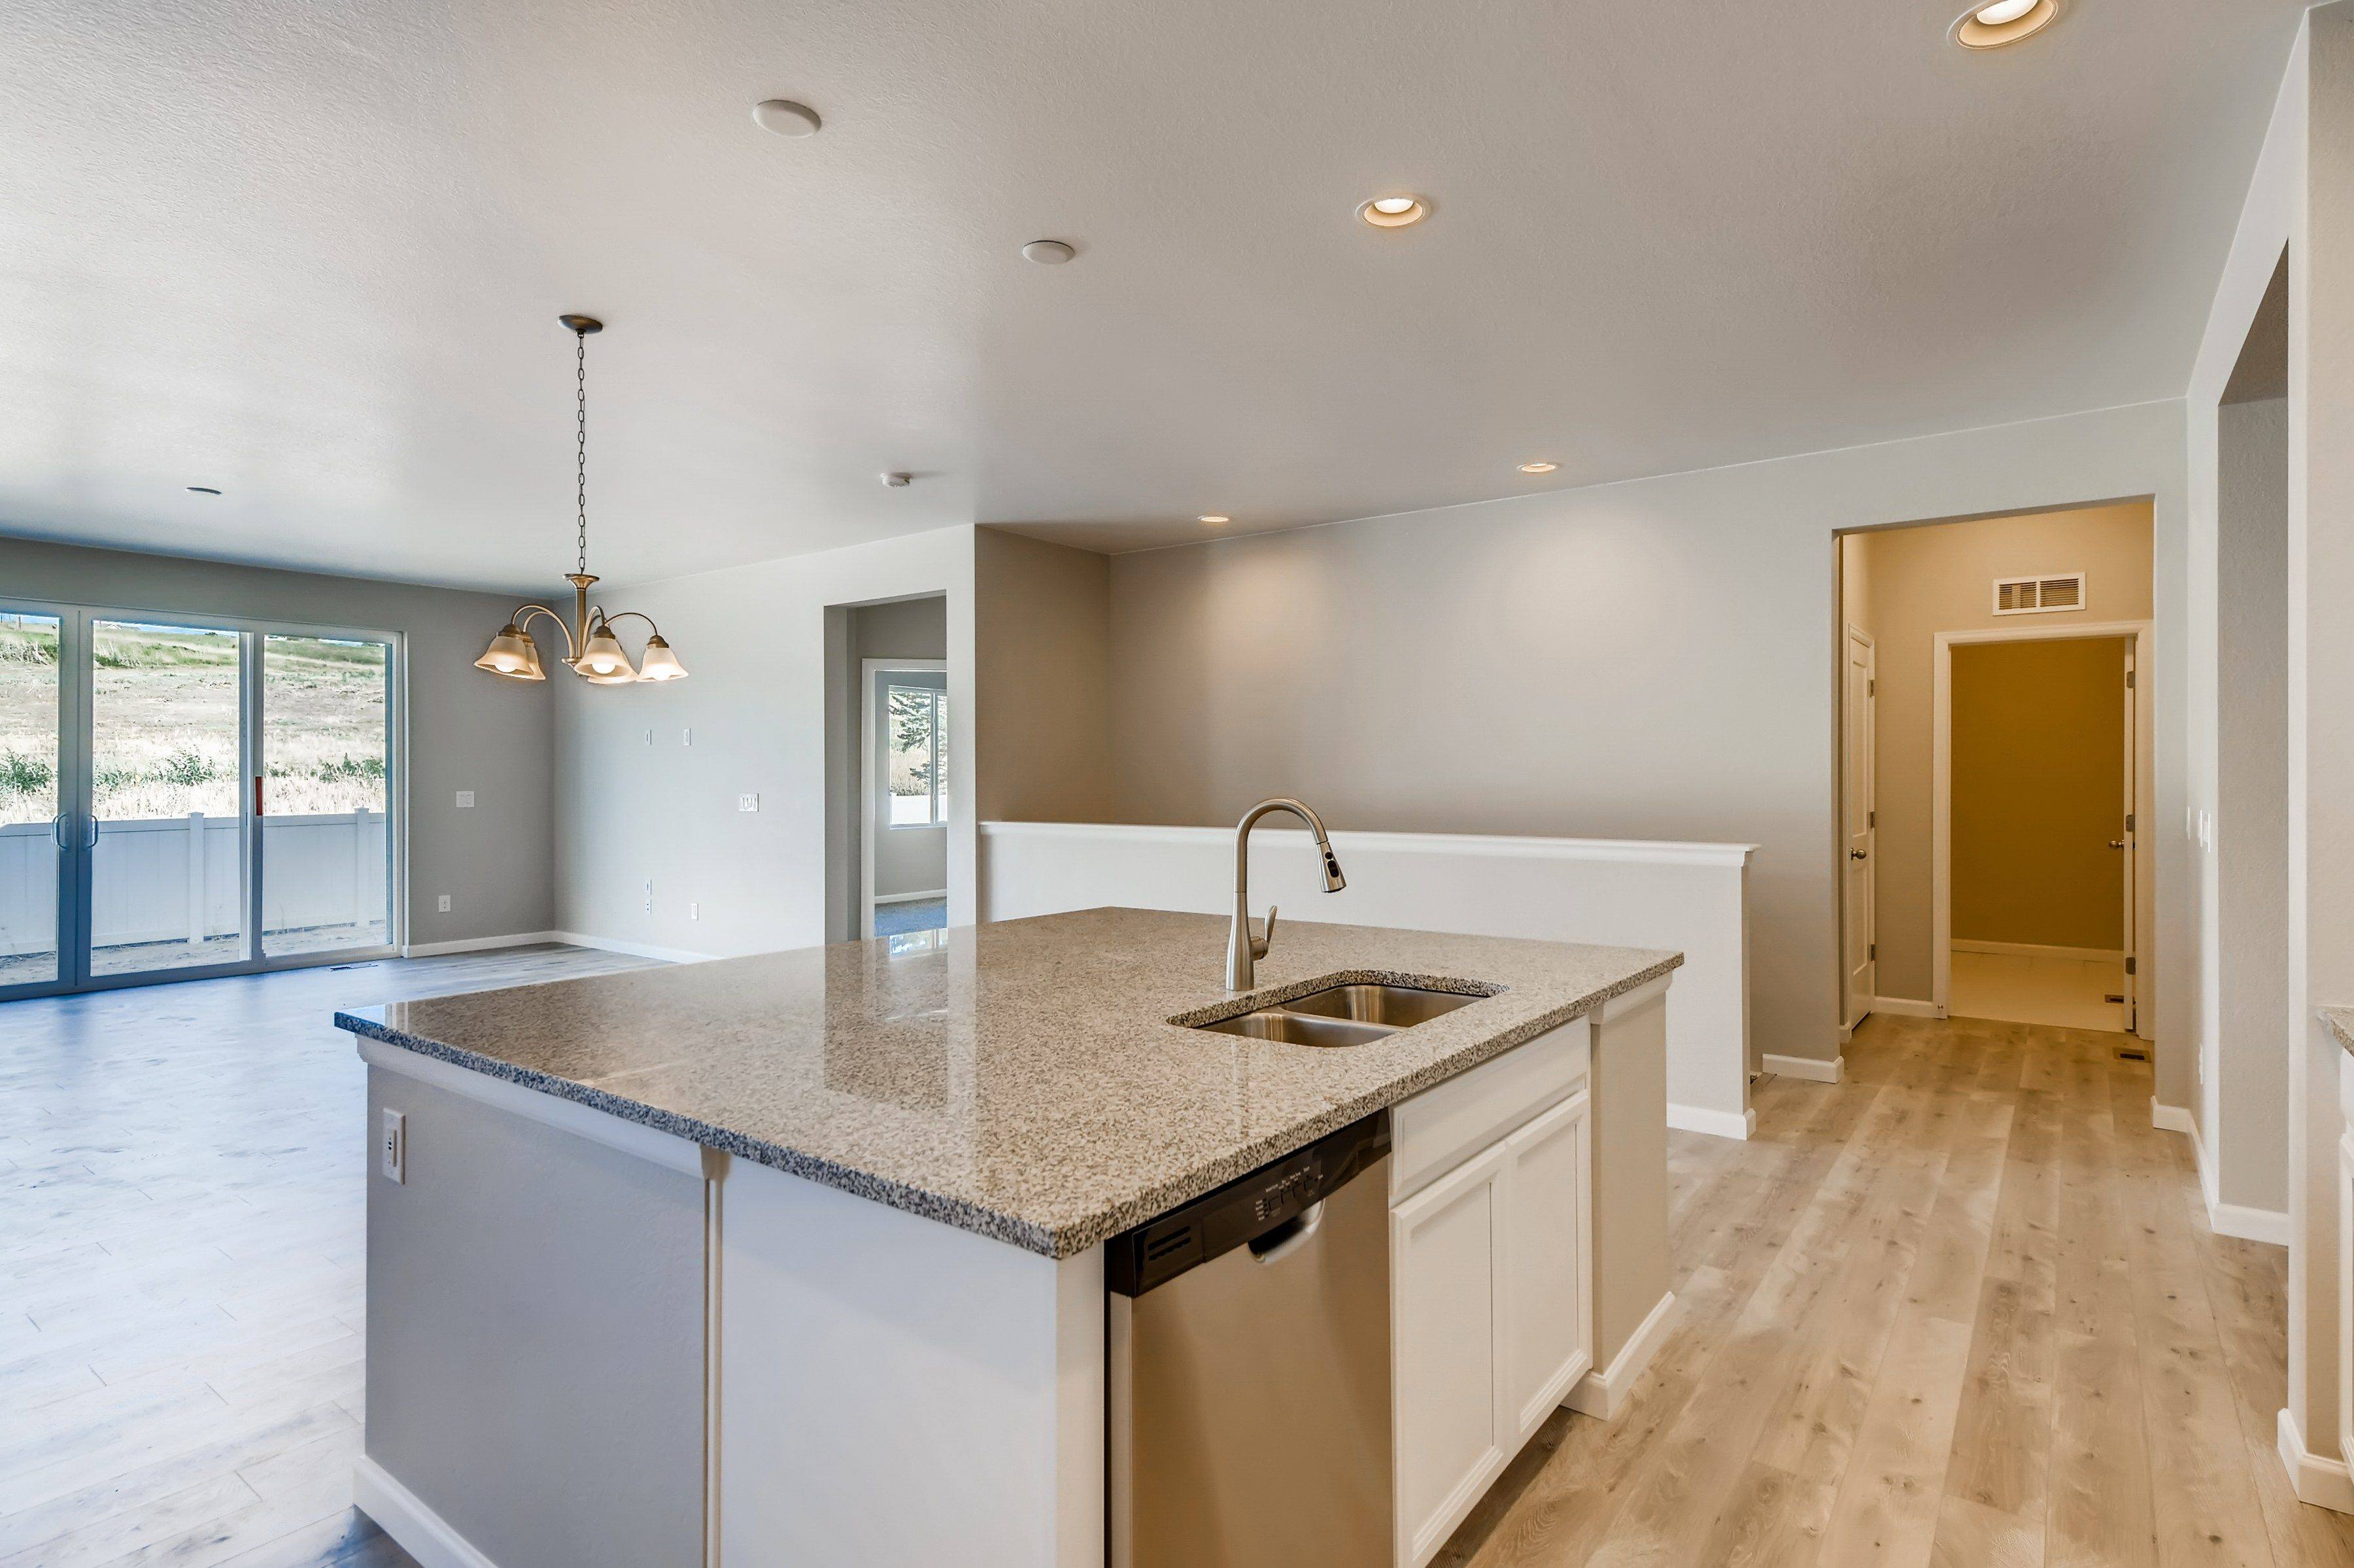 Kitchen featured in the Estes By Taylor Morrison in Denver, CO